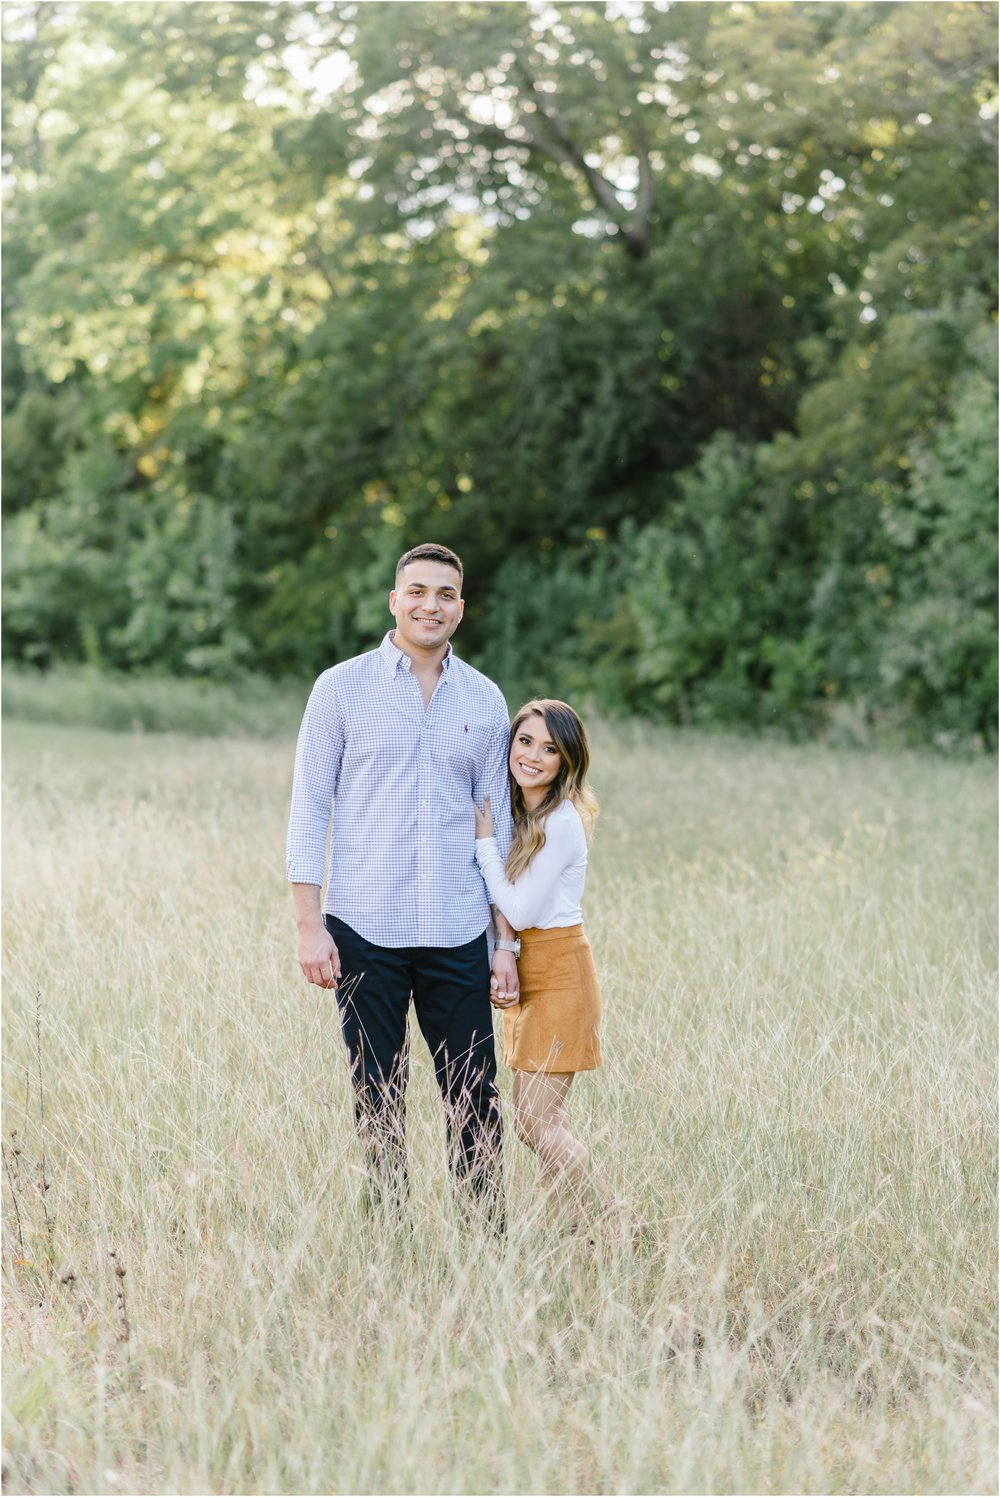 dallasweddingphotographer_Ashley+Adrian_WhiteRockLakeEngagement_0013.jpg